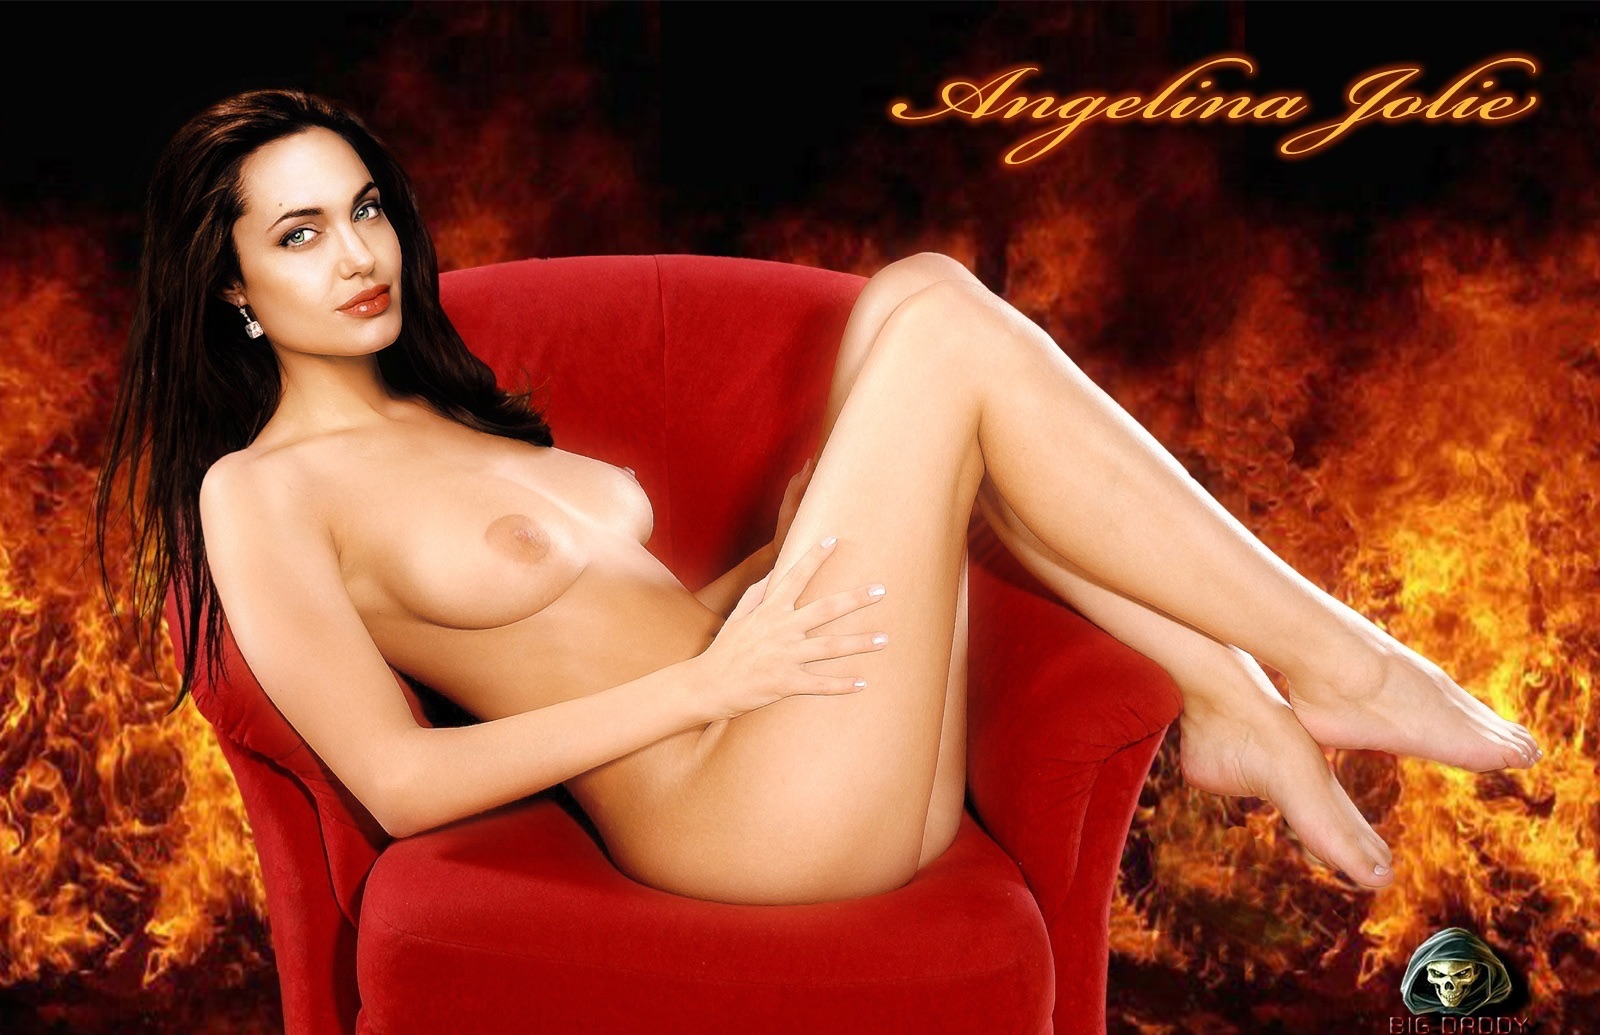 Apologise, Angelina jolie xxx nude pics thanks